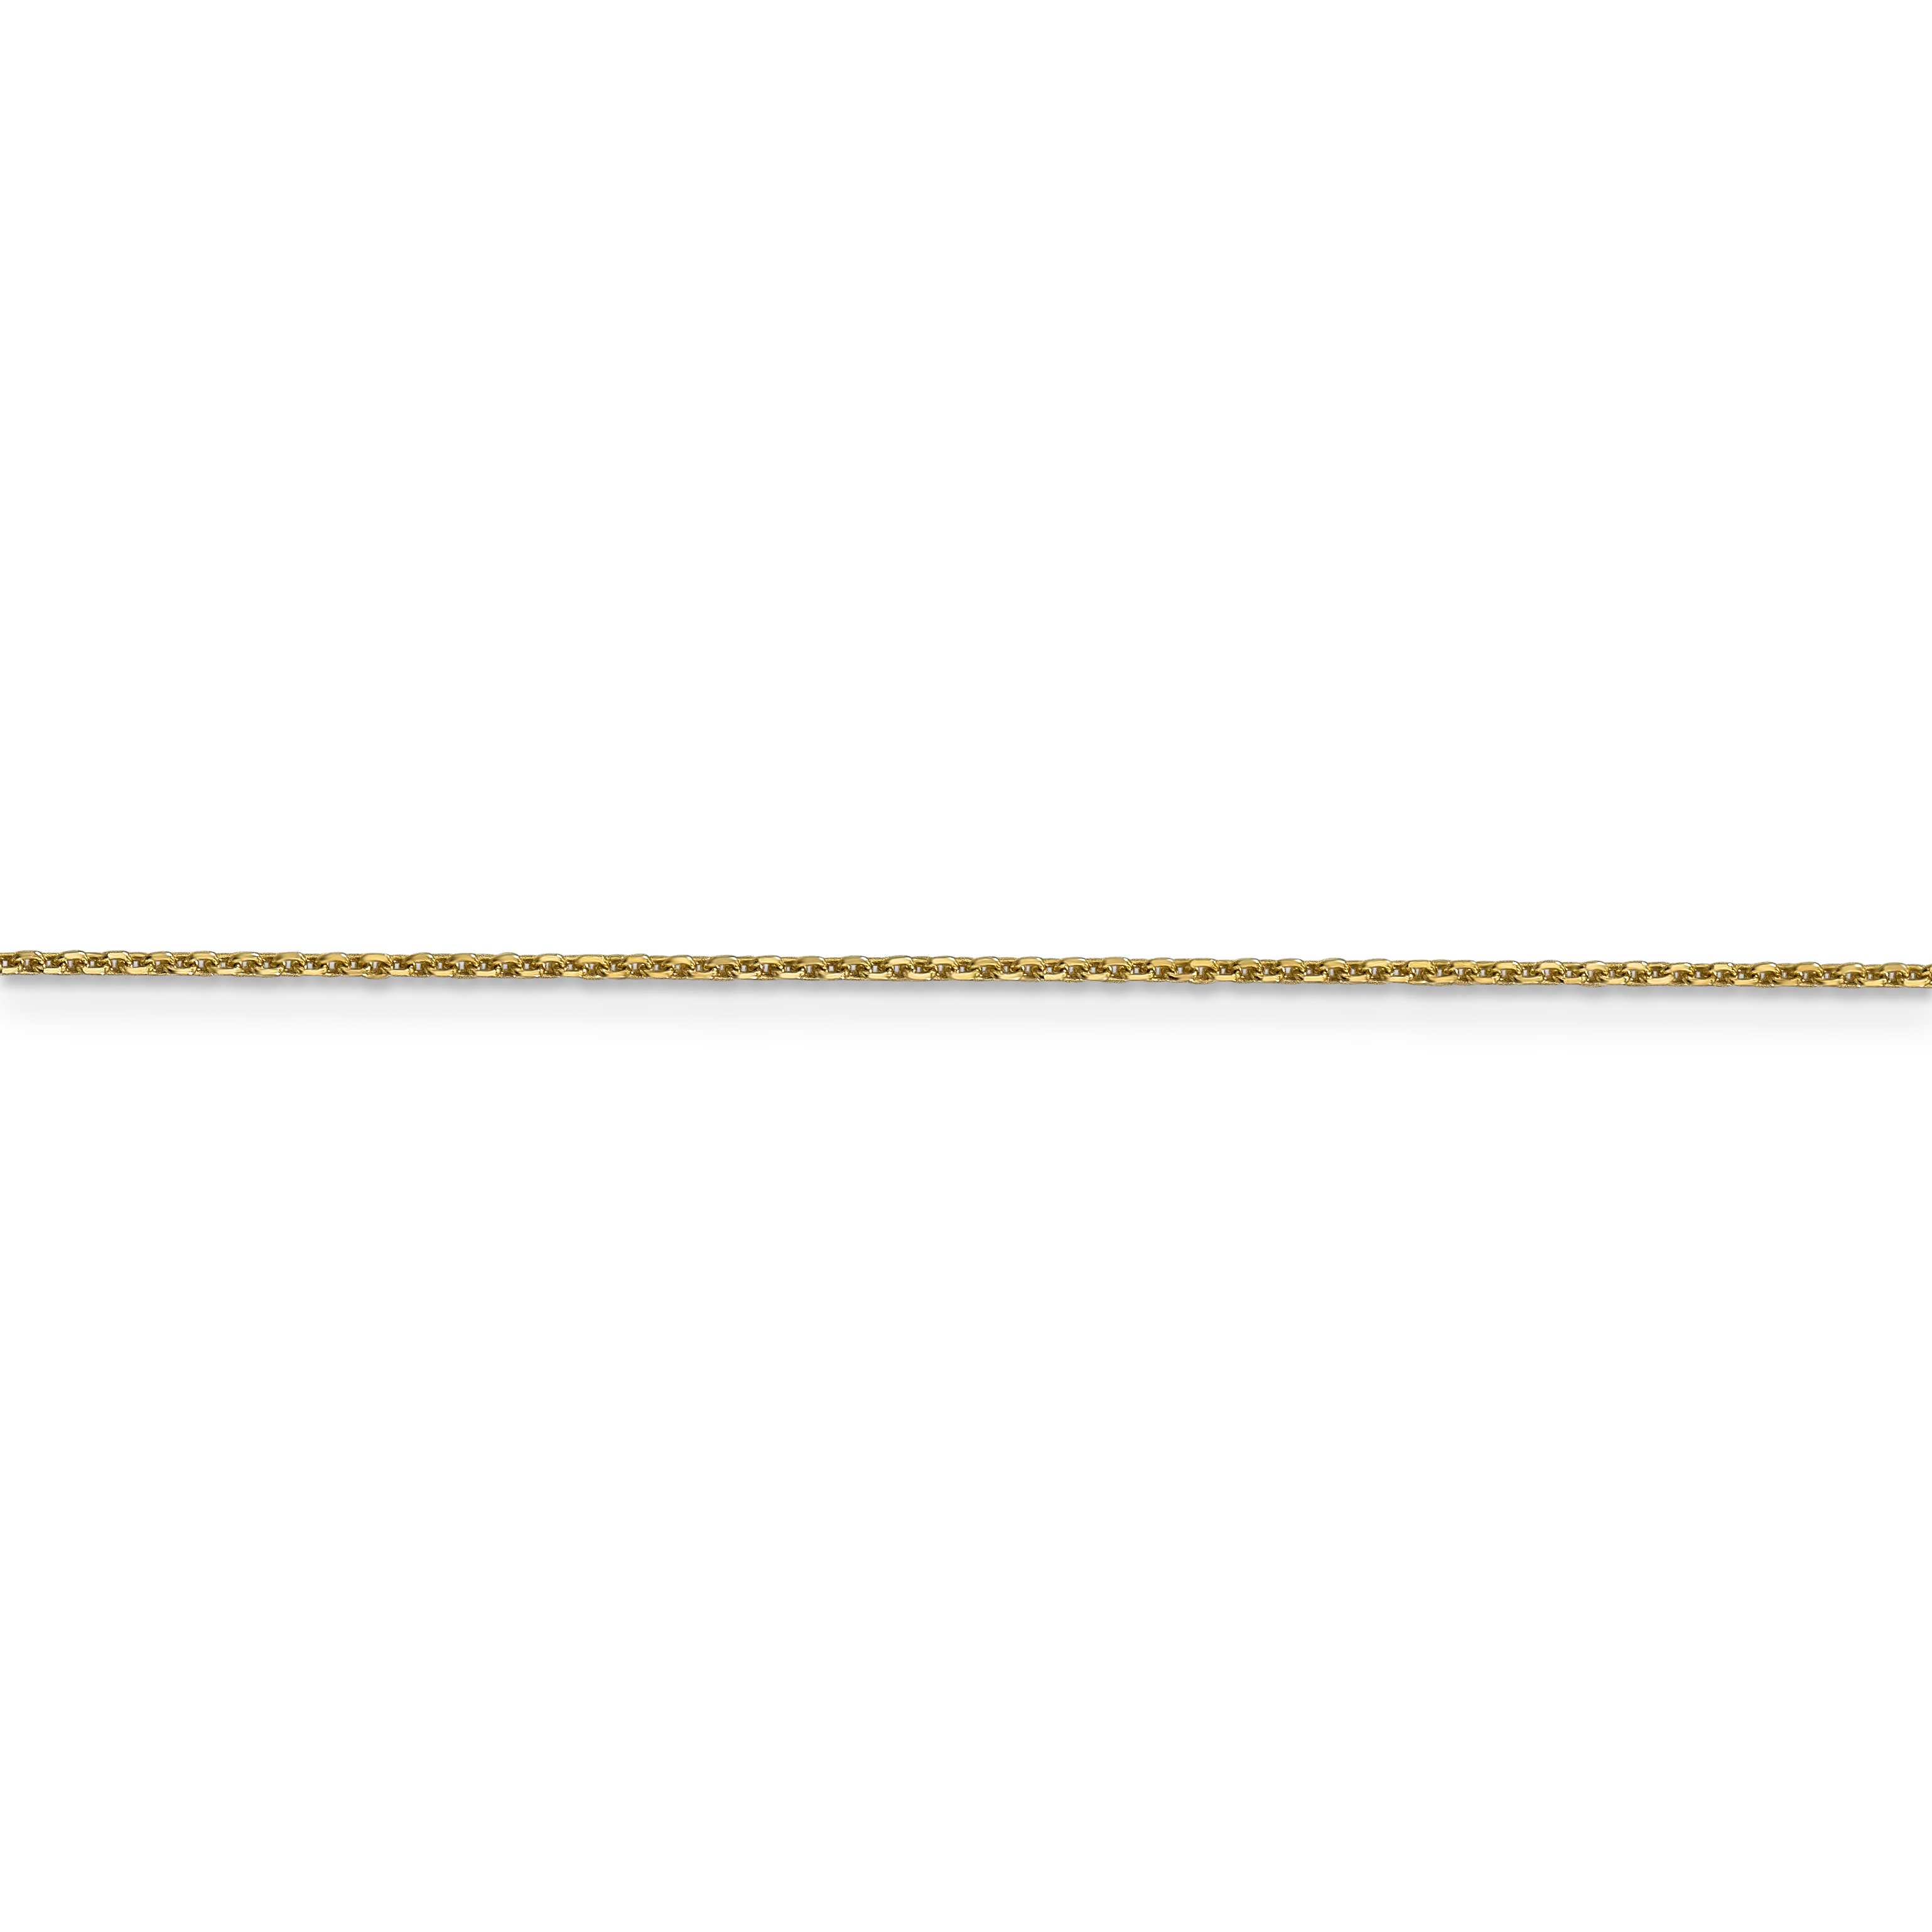 14k Yellow Gold .95mm Link Cable Chain Necklace 20 Inch Pendant Charm Round Fine Jewelry Gifts For Women For Her - image 4 of 5